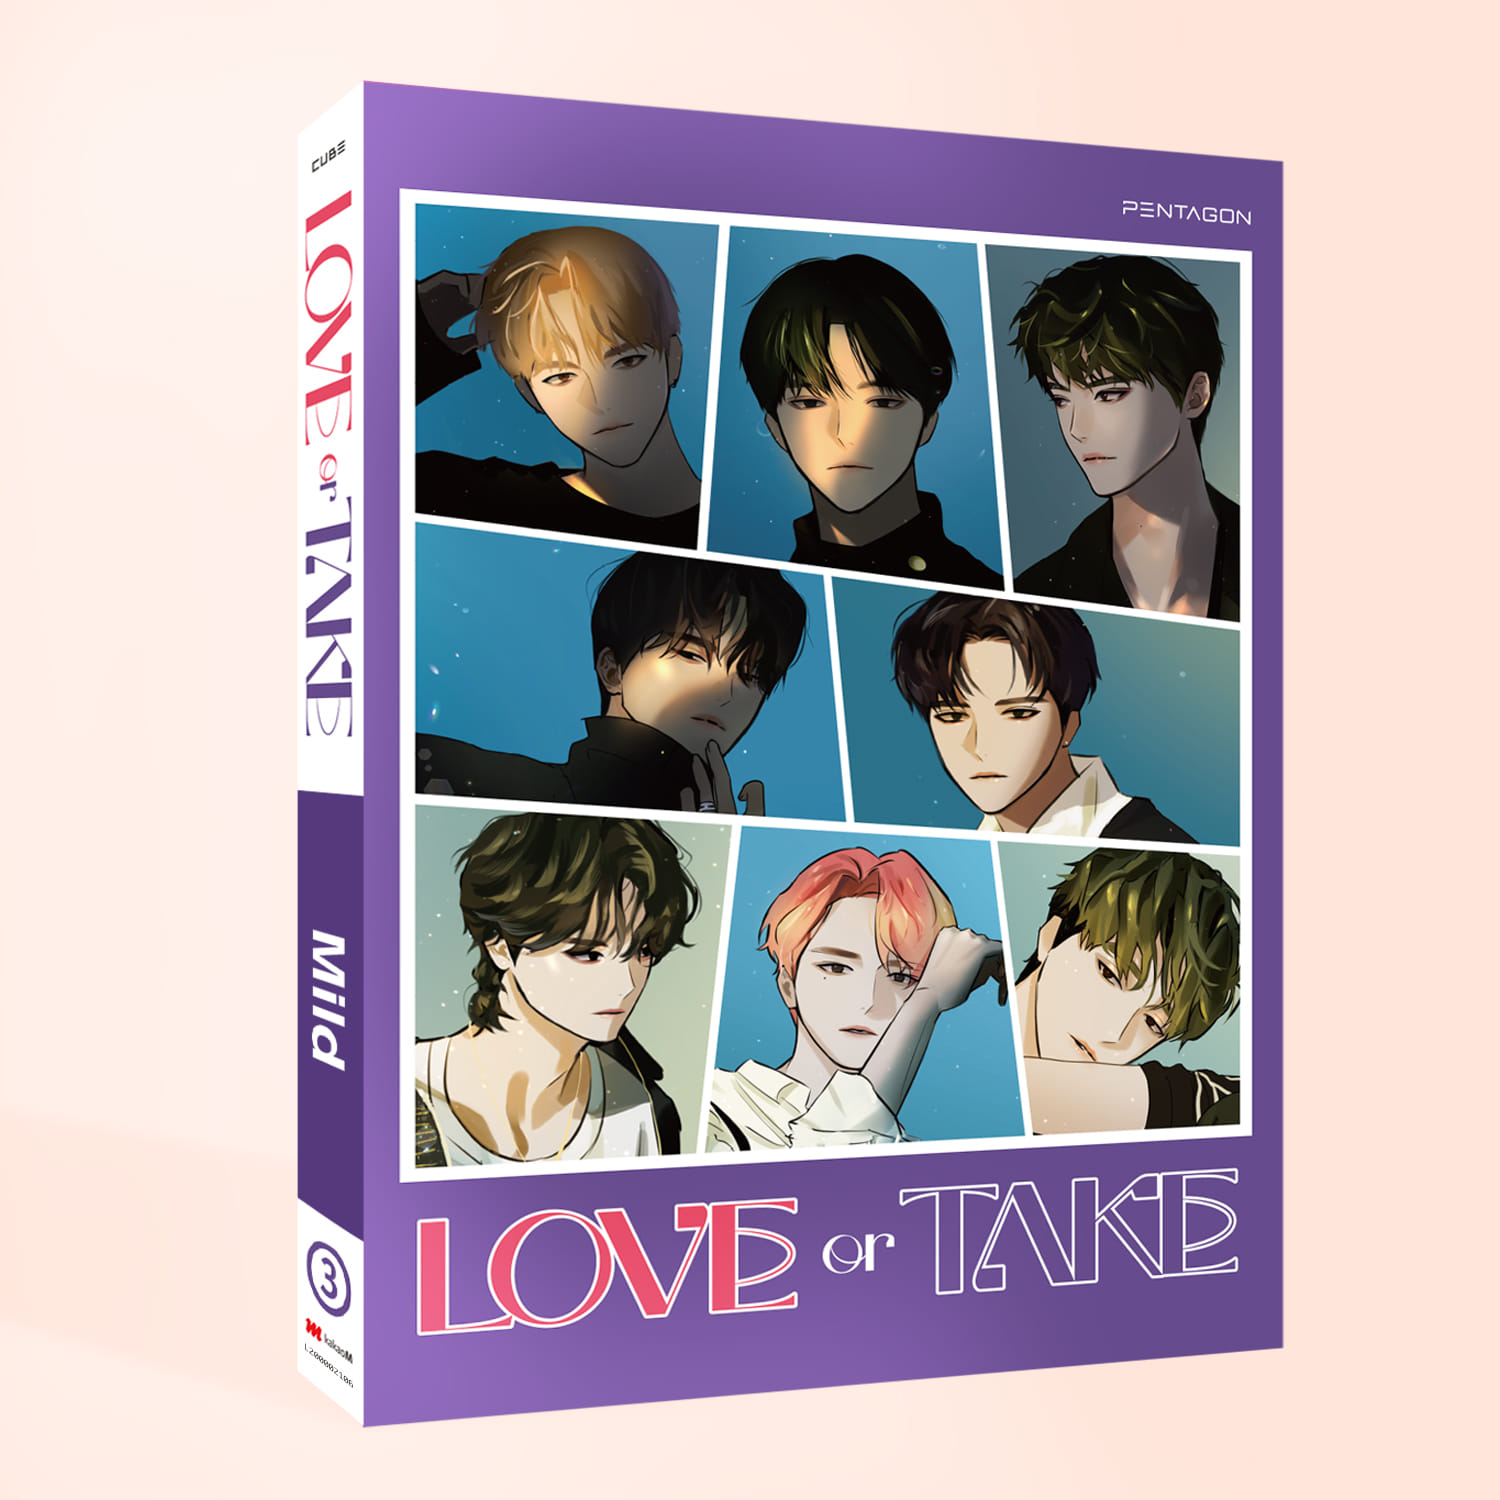 [PRE-ORDER] 펜타곤(PENTAGON) - 11th MINI ALBUM [LOVE or TAKE] (Mild Ver.)케이팝스토어(kpop store)